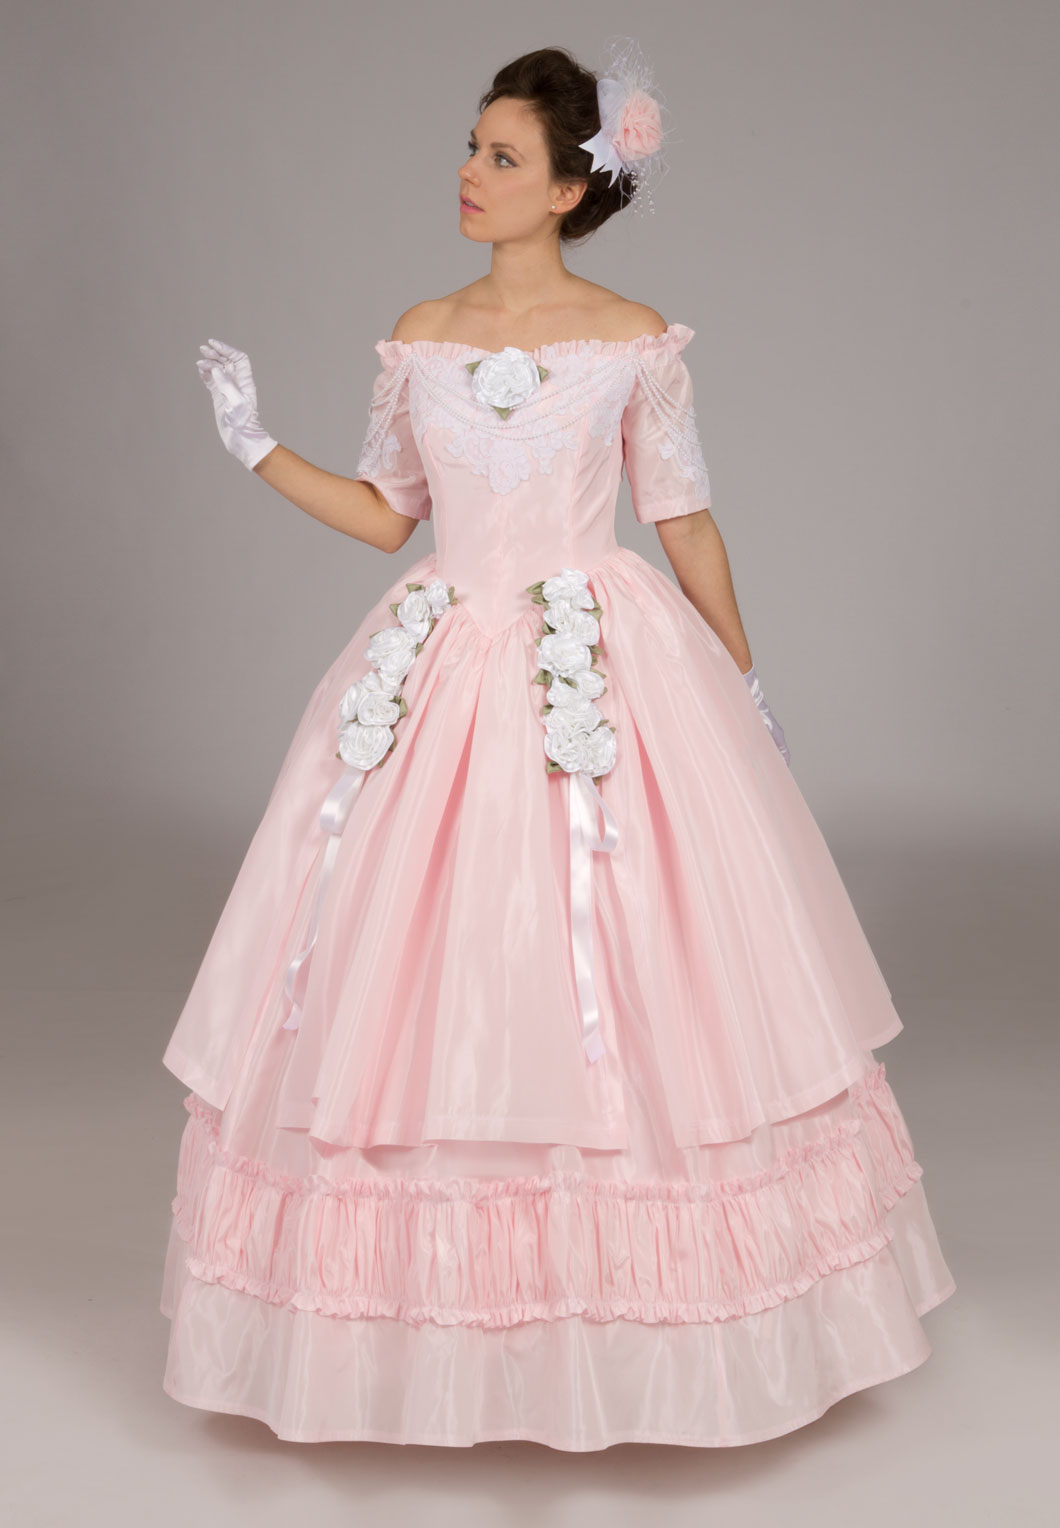 Victorian Southern Belle Ball Gown | Recollections